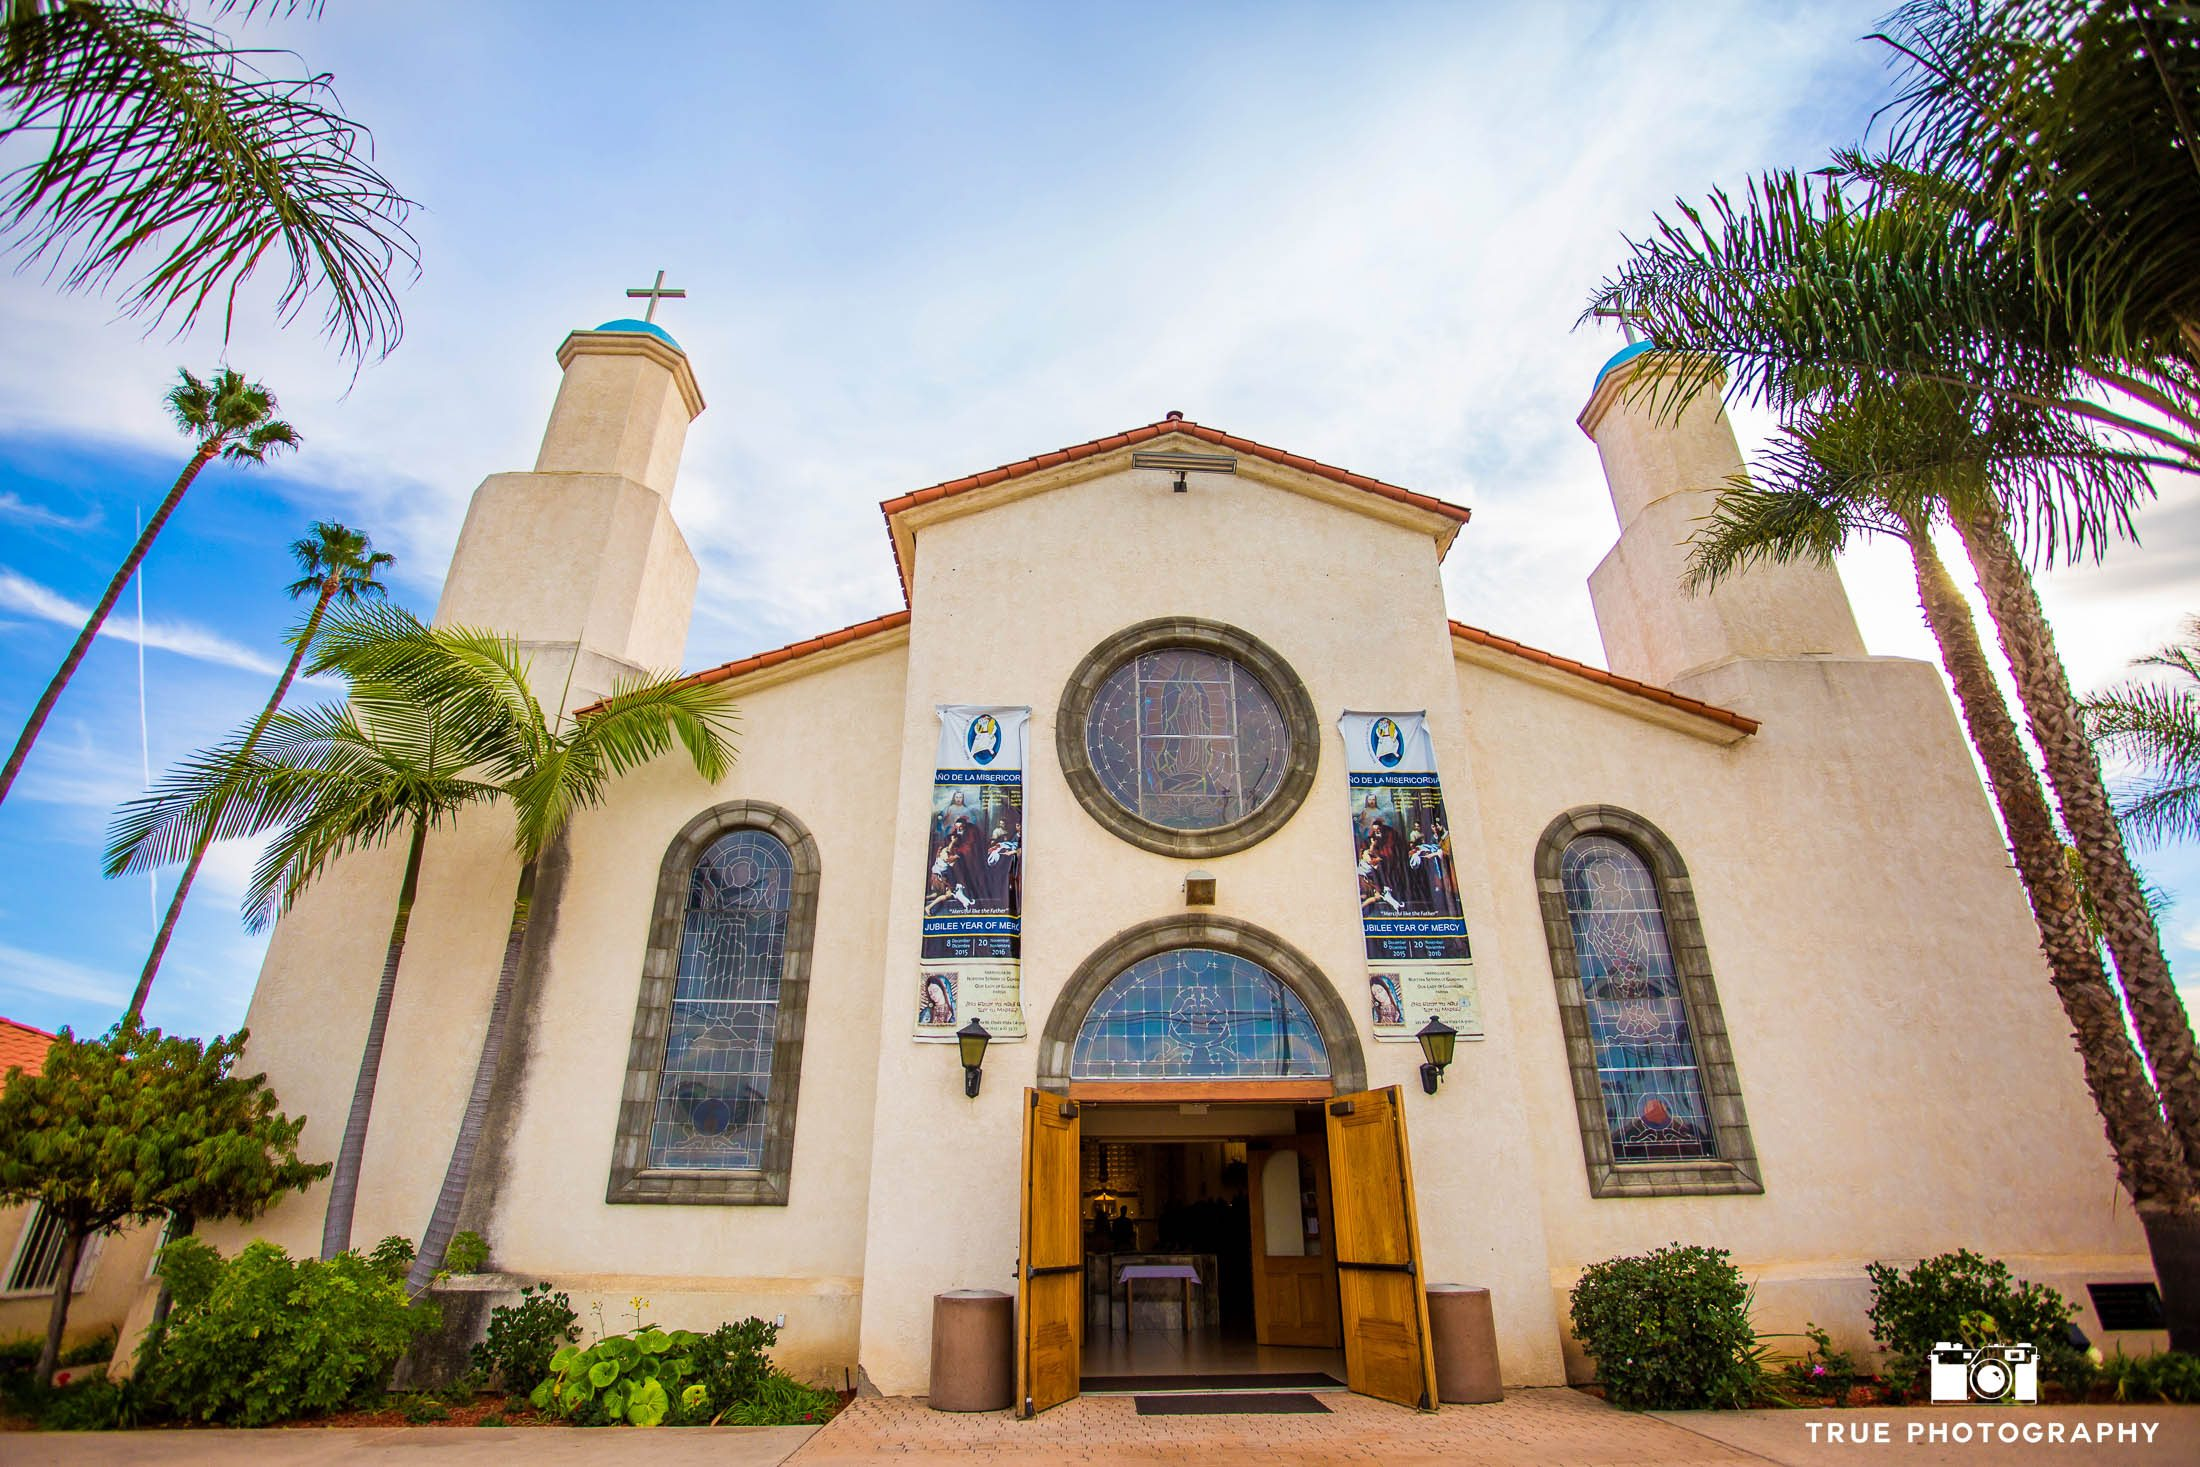 Exterior of Our Lady of Guadalupe Church in Chula Vista, California